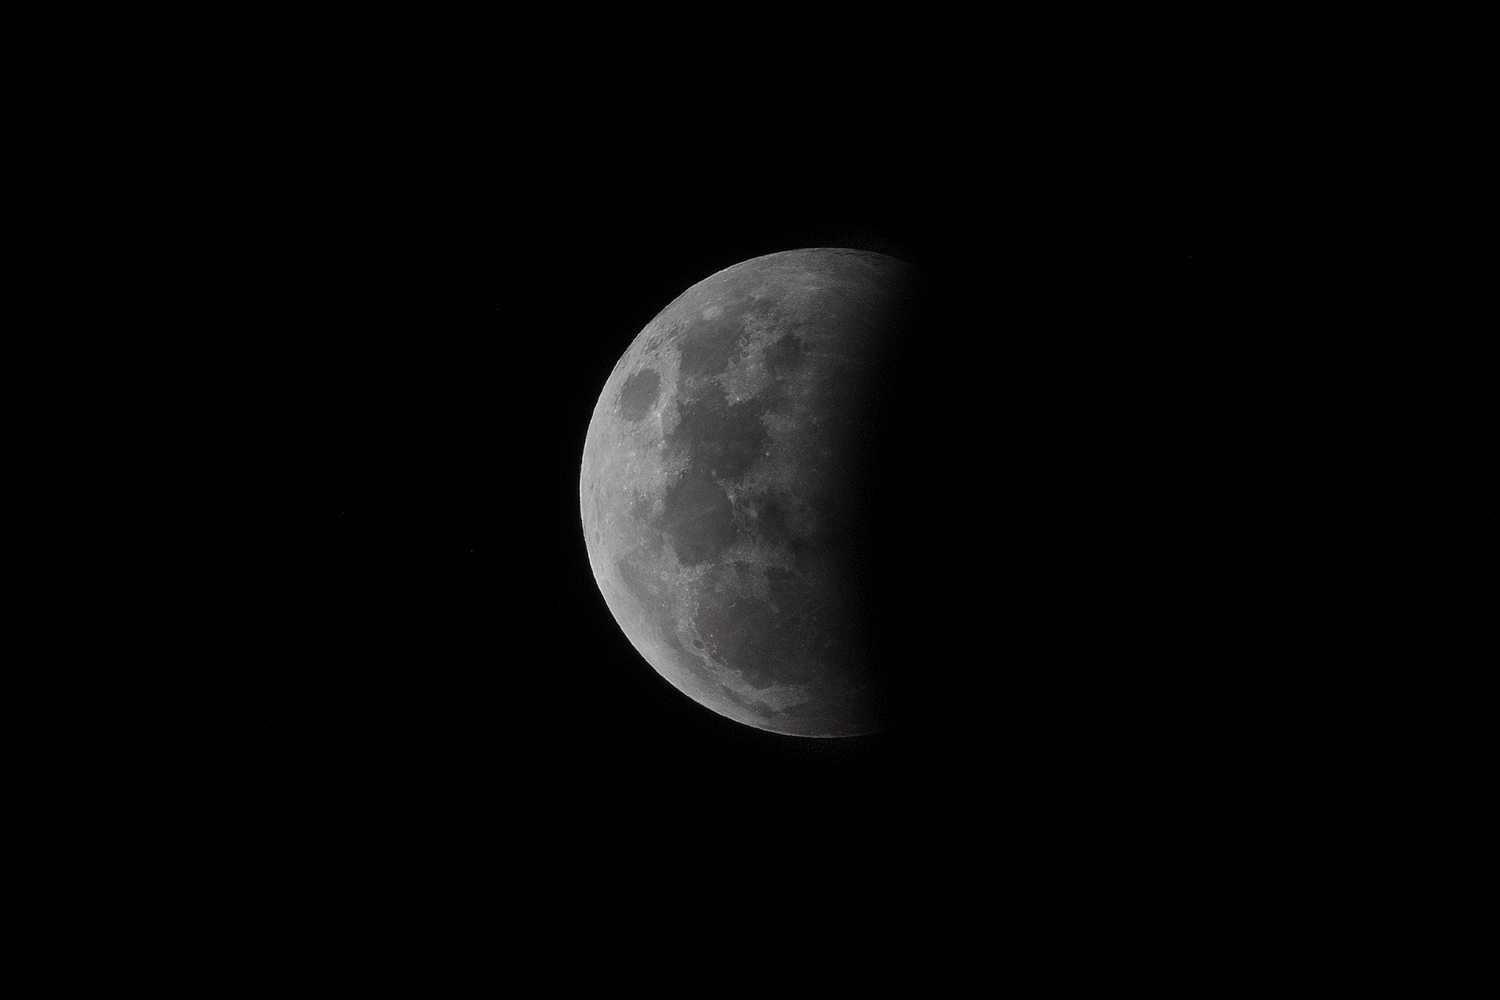 astrophotography of the moon